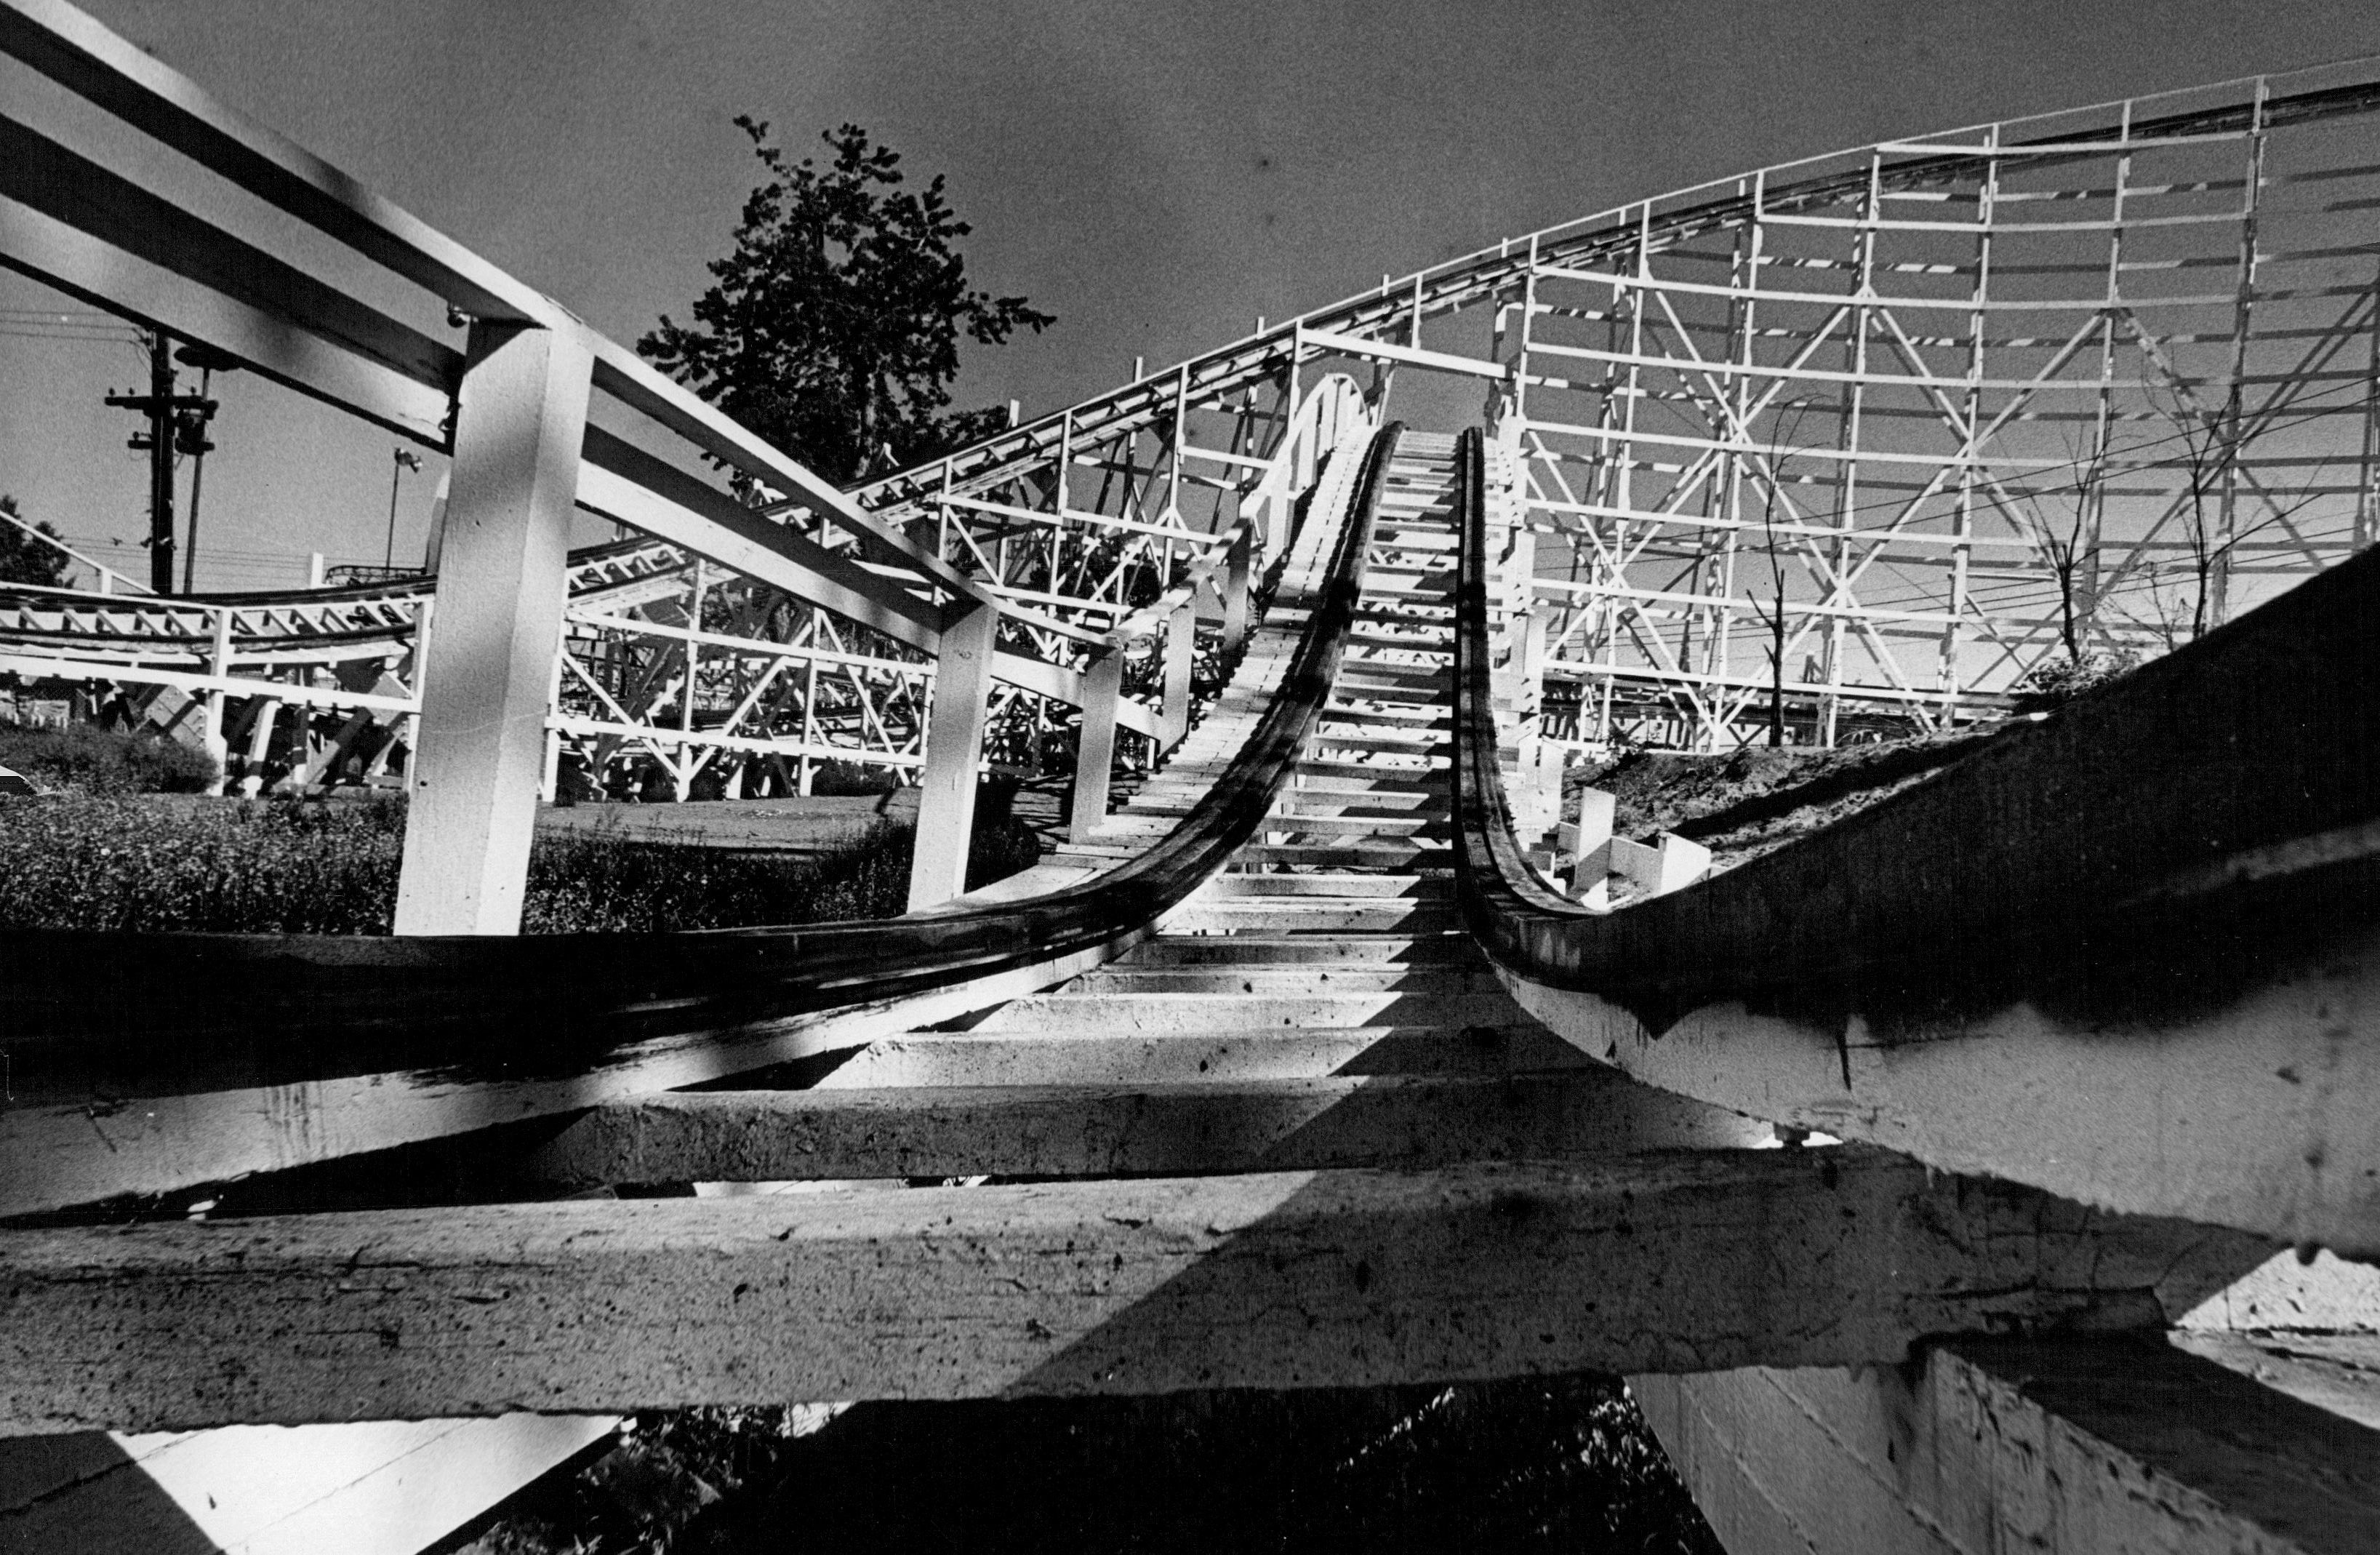 roller coasters history physics and records From humble beginnings to dominating modern theme park skylines, roller coasters are steeped with a rich history a timeline of significant coaster events.